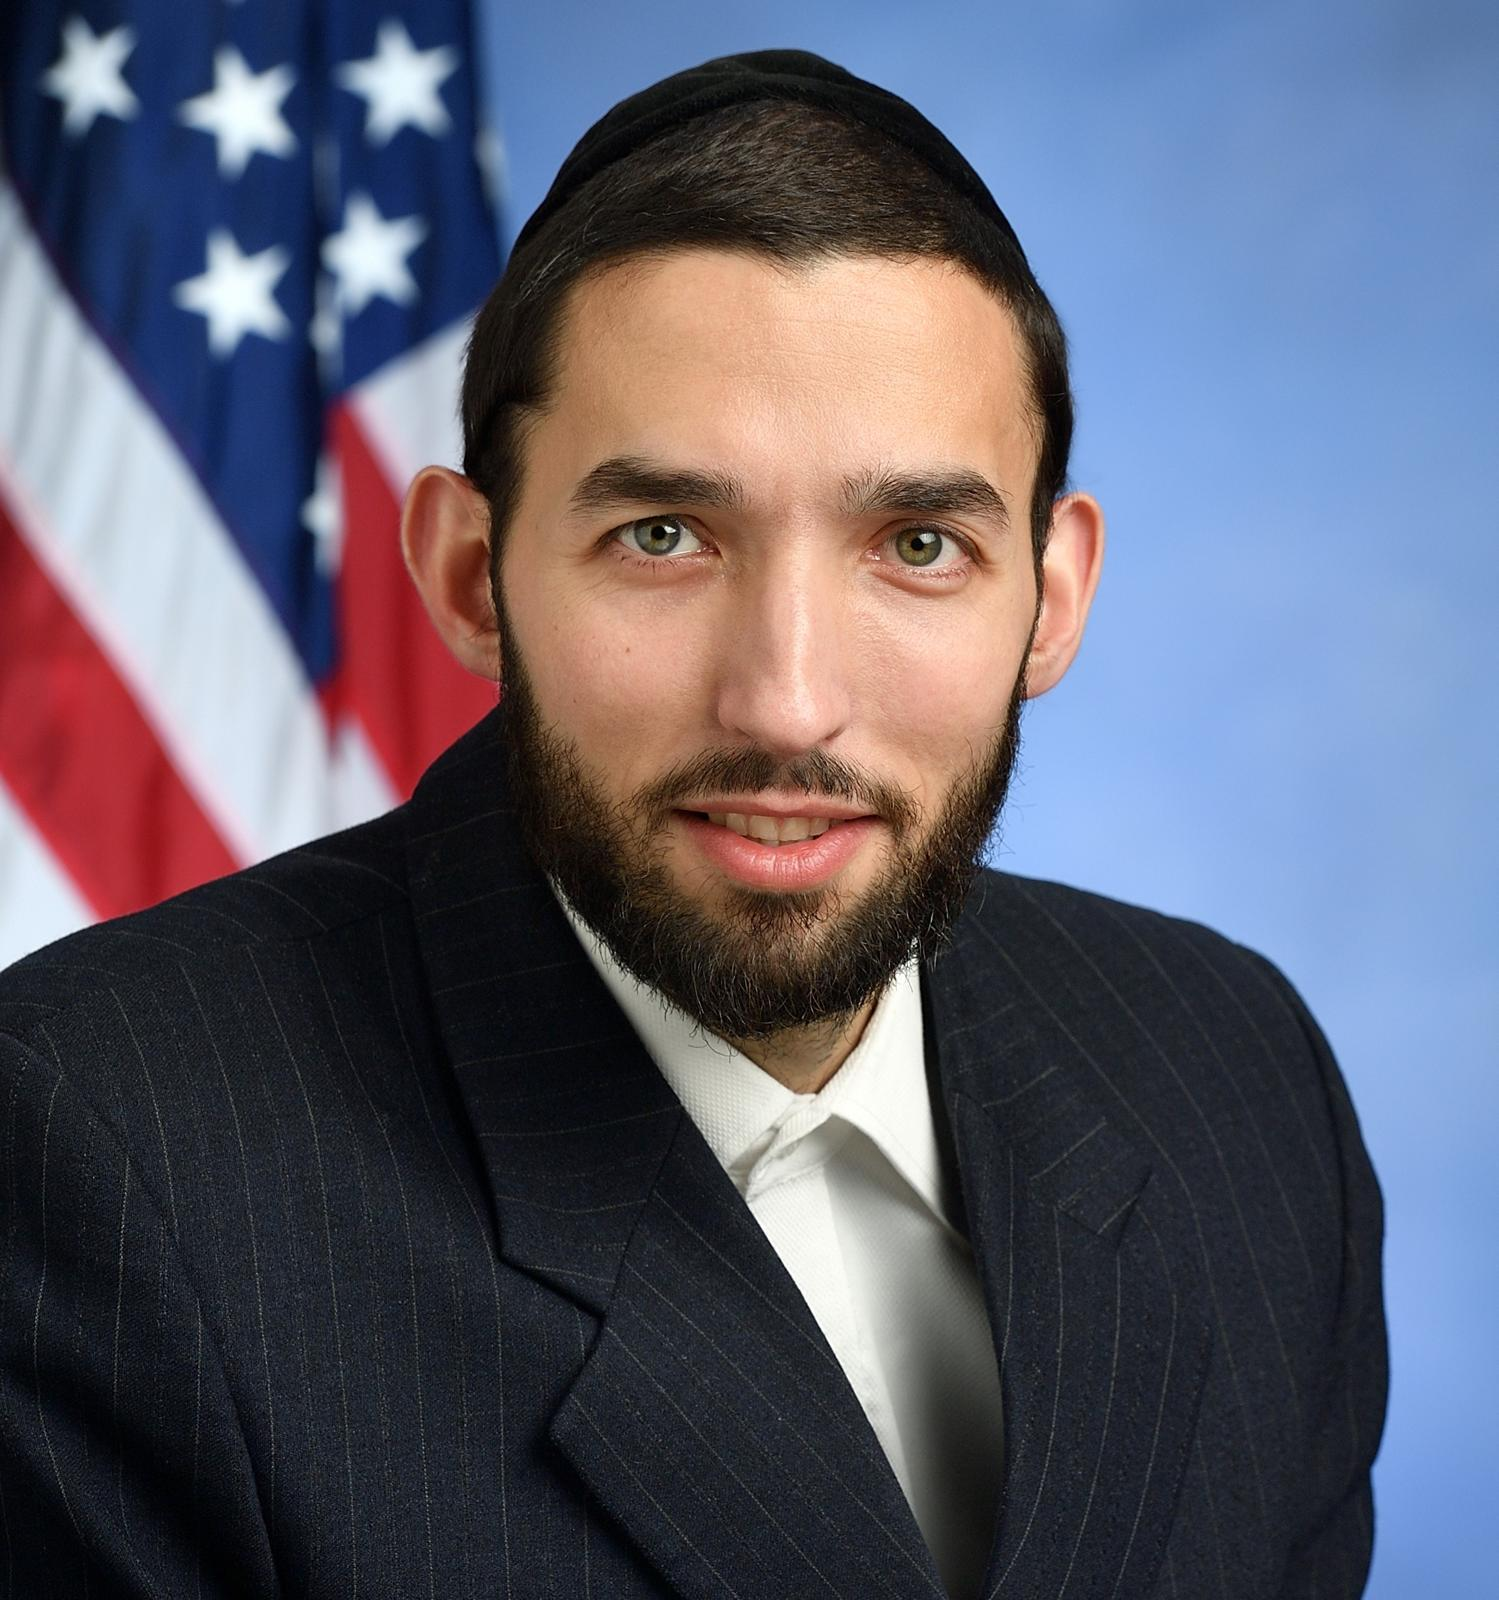 Assemblyman Simcha Eichenstein Calls for Suspension of Virulently anti-Semitic Hospital Resident at NYP Brooklyn